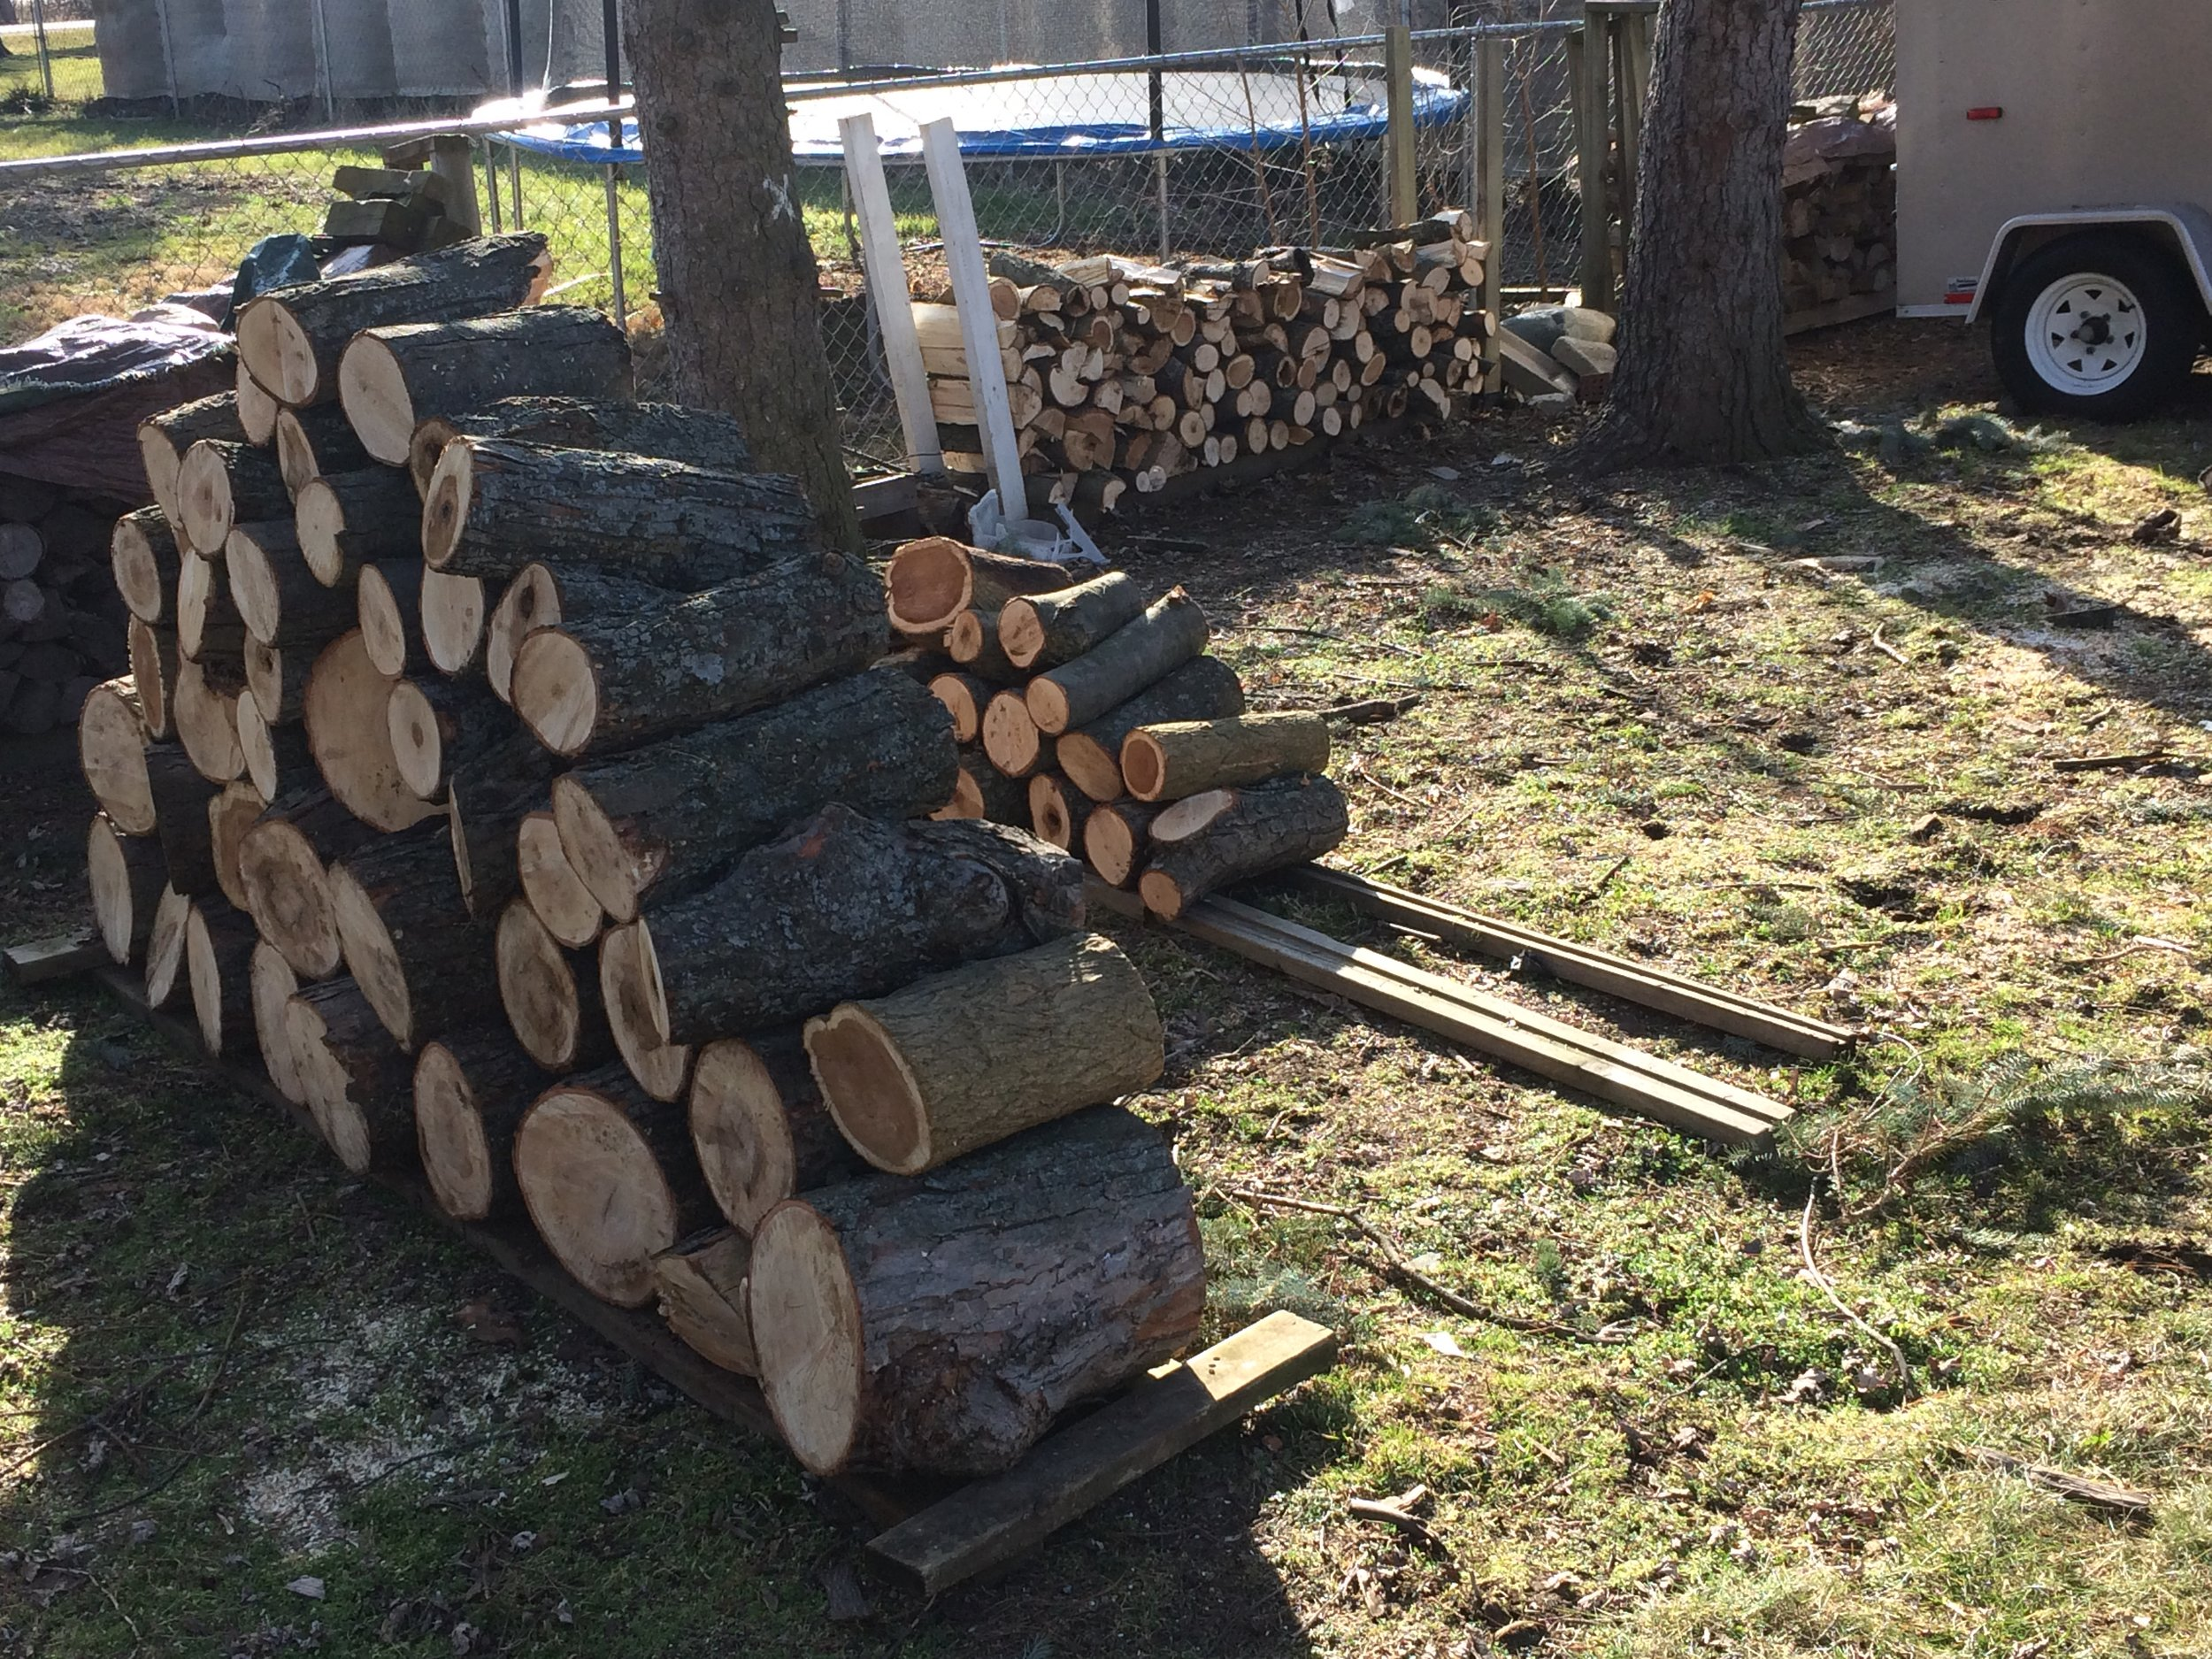 Firewood yield from unexpected tree-trimmer visit